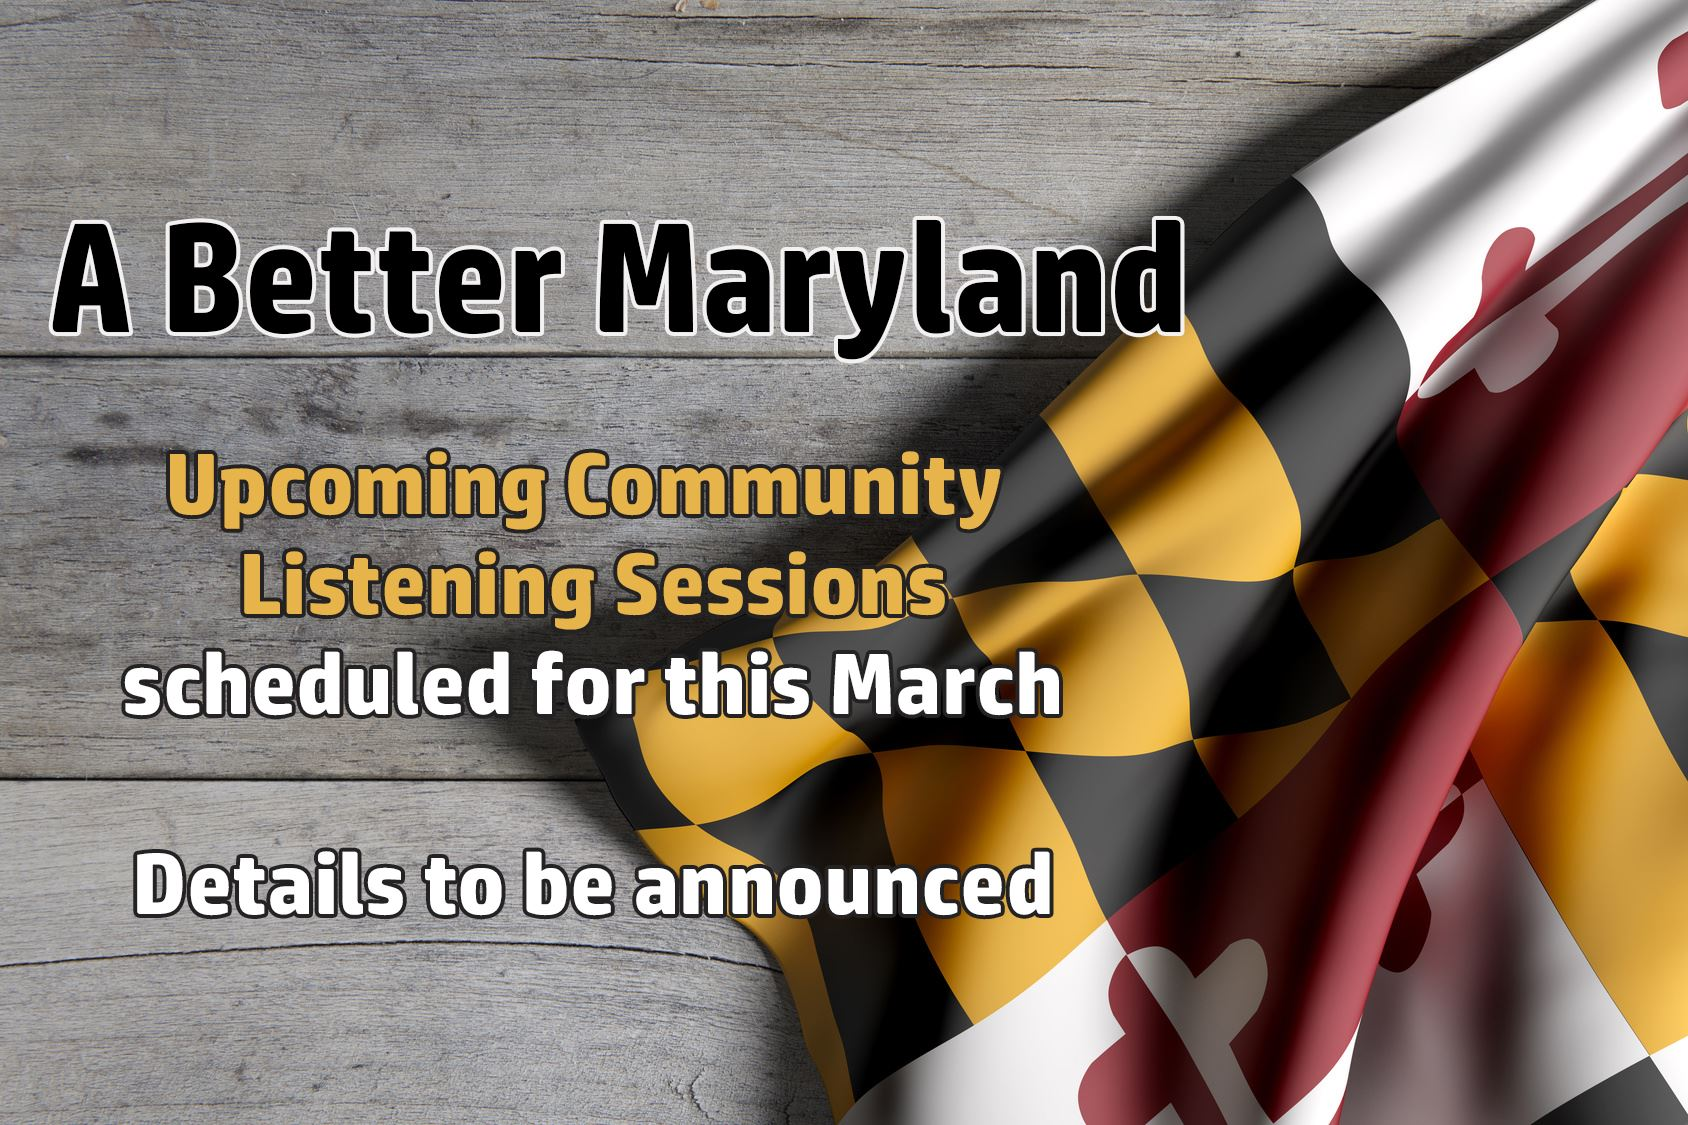 A Better Maryland Community Listening Sessions